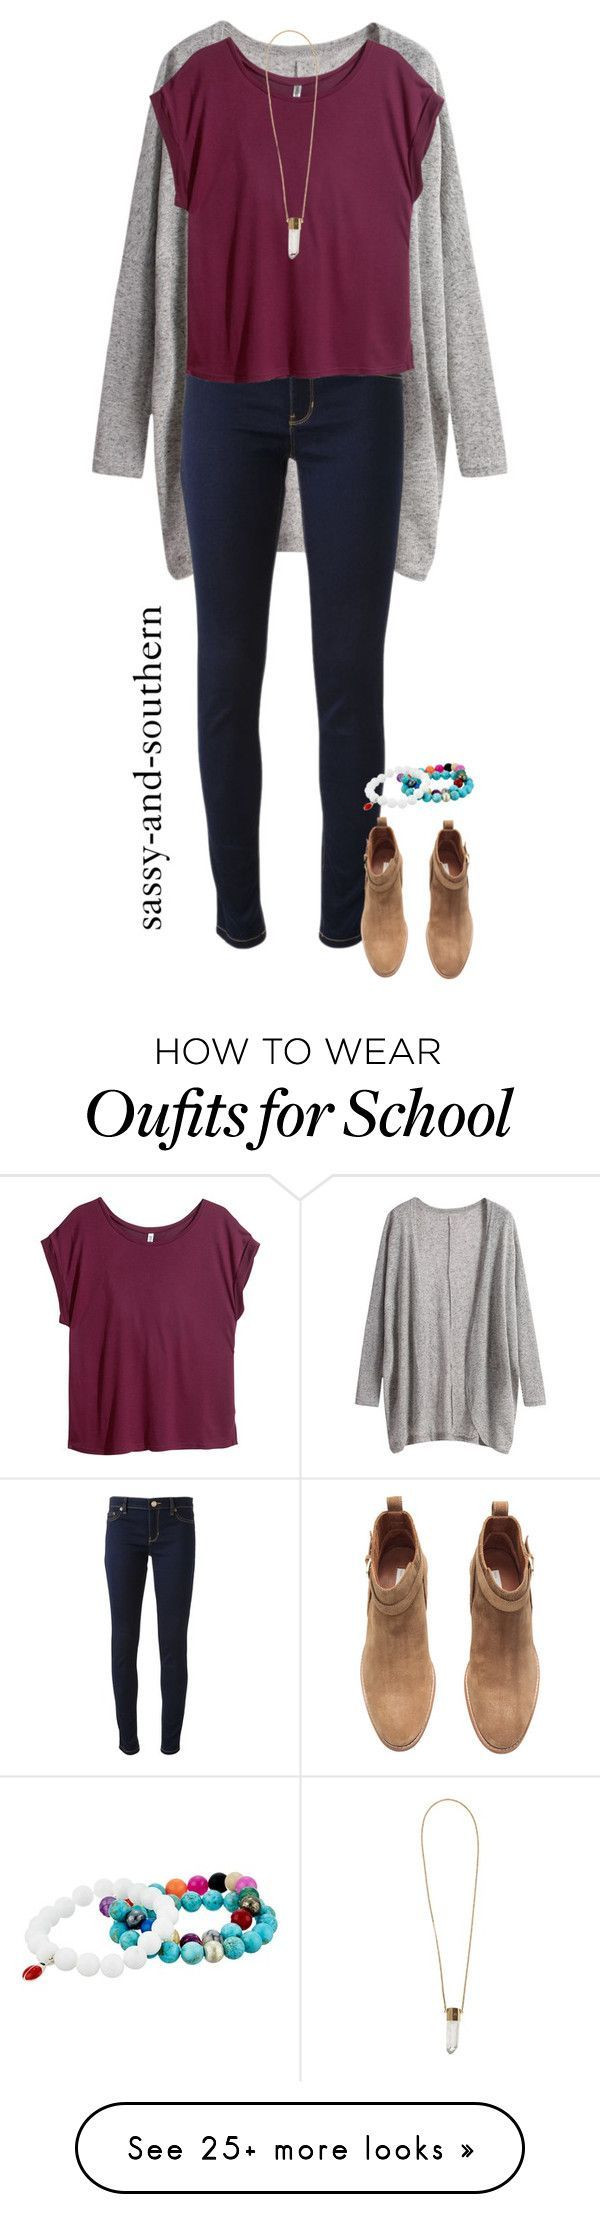 Hot new styles windowshoponline school outfits sassy and